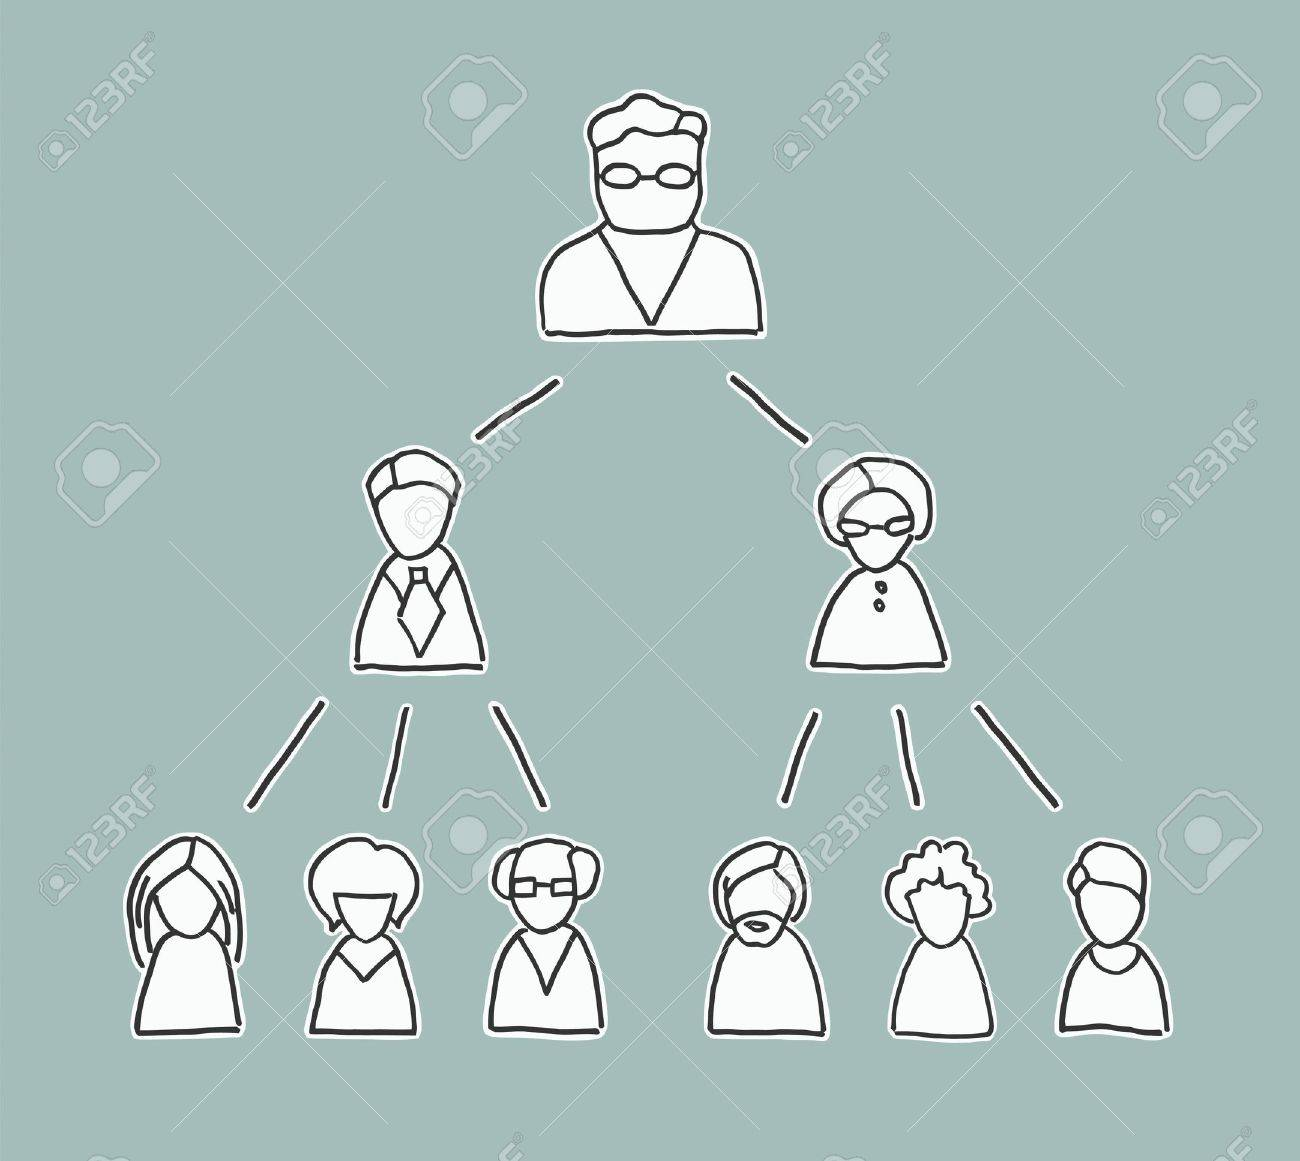 Retro style management chart with simple line drawn people icons, showing the chain of command from the boss downwards Stock Vector - 18151834